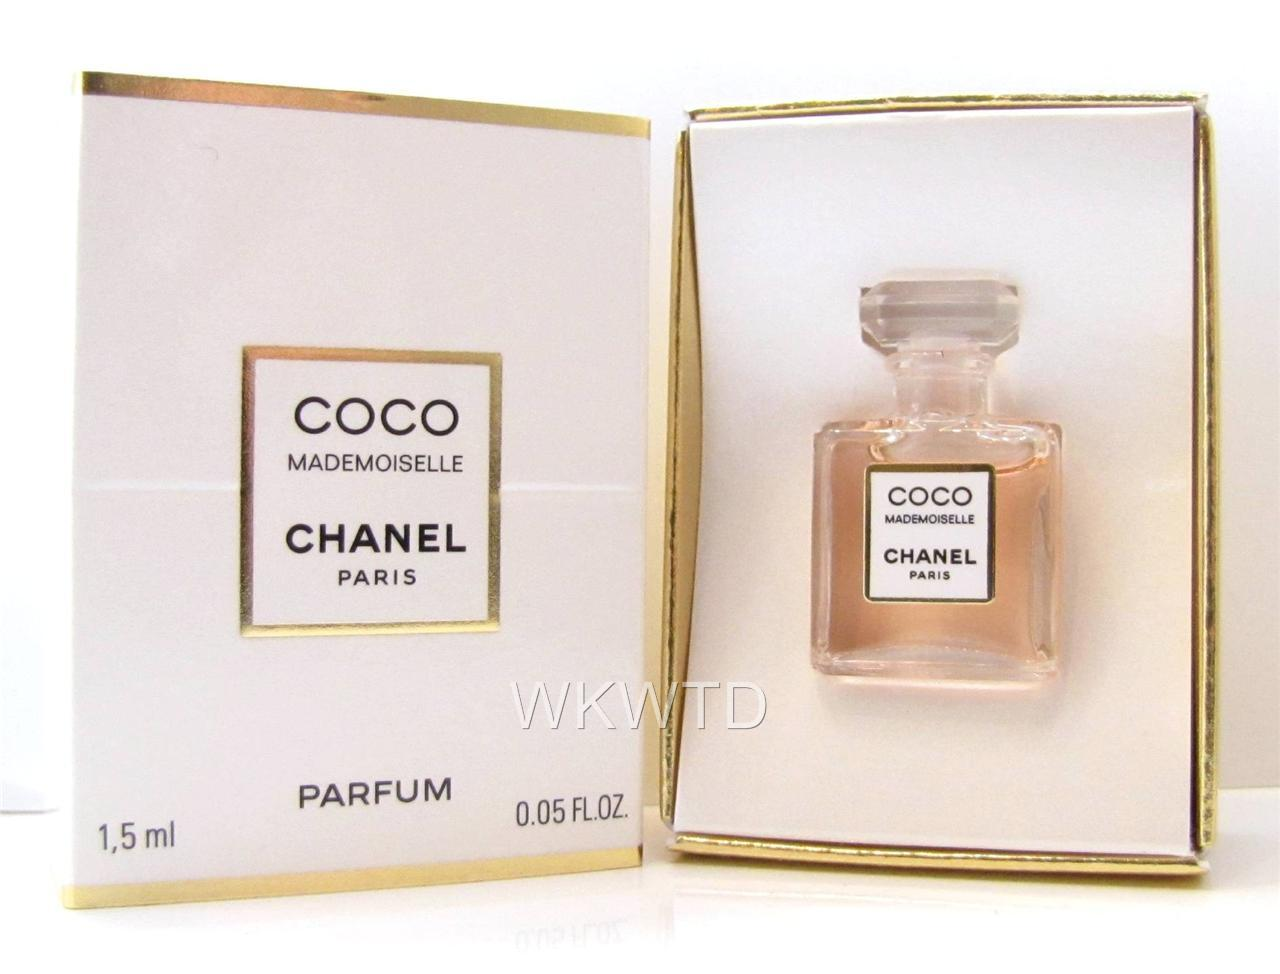 Chanel-Coco-Mademoiselle-PARFUM-MINI-BOTTLE-1-5ML-100-AUTHENTIC-BOXED-PERFUME